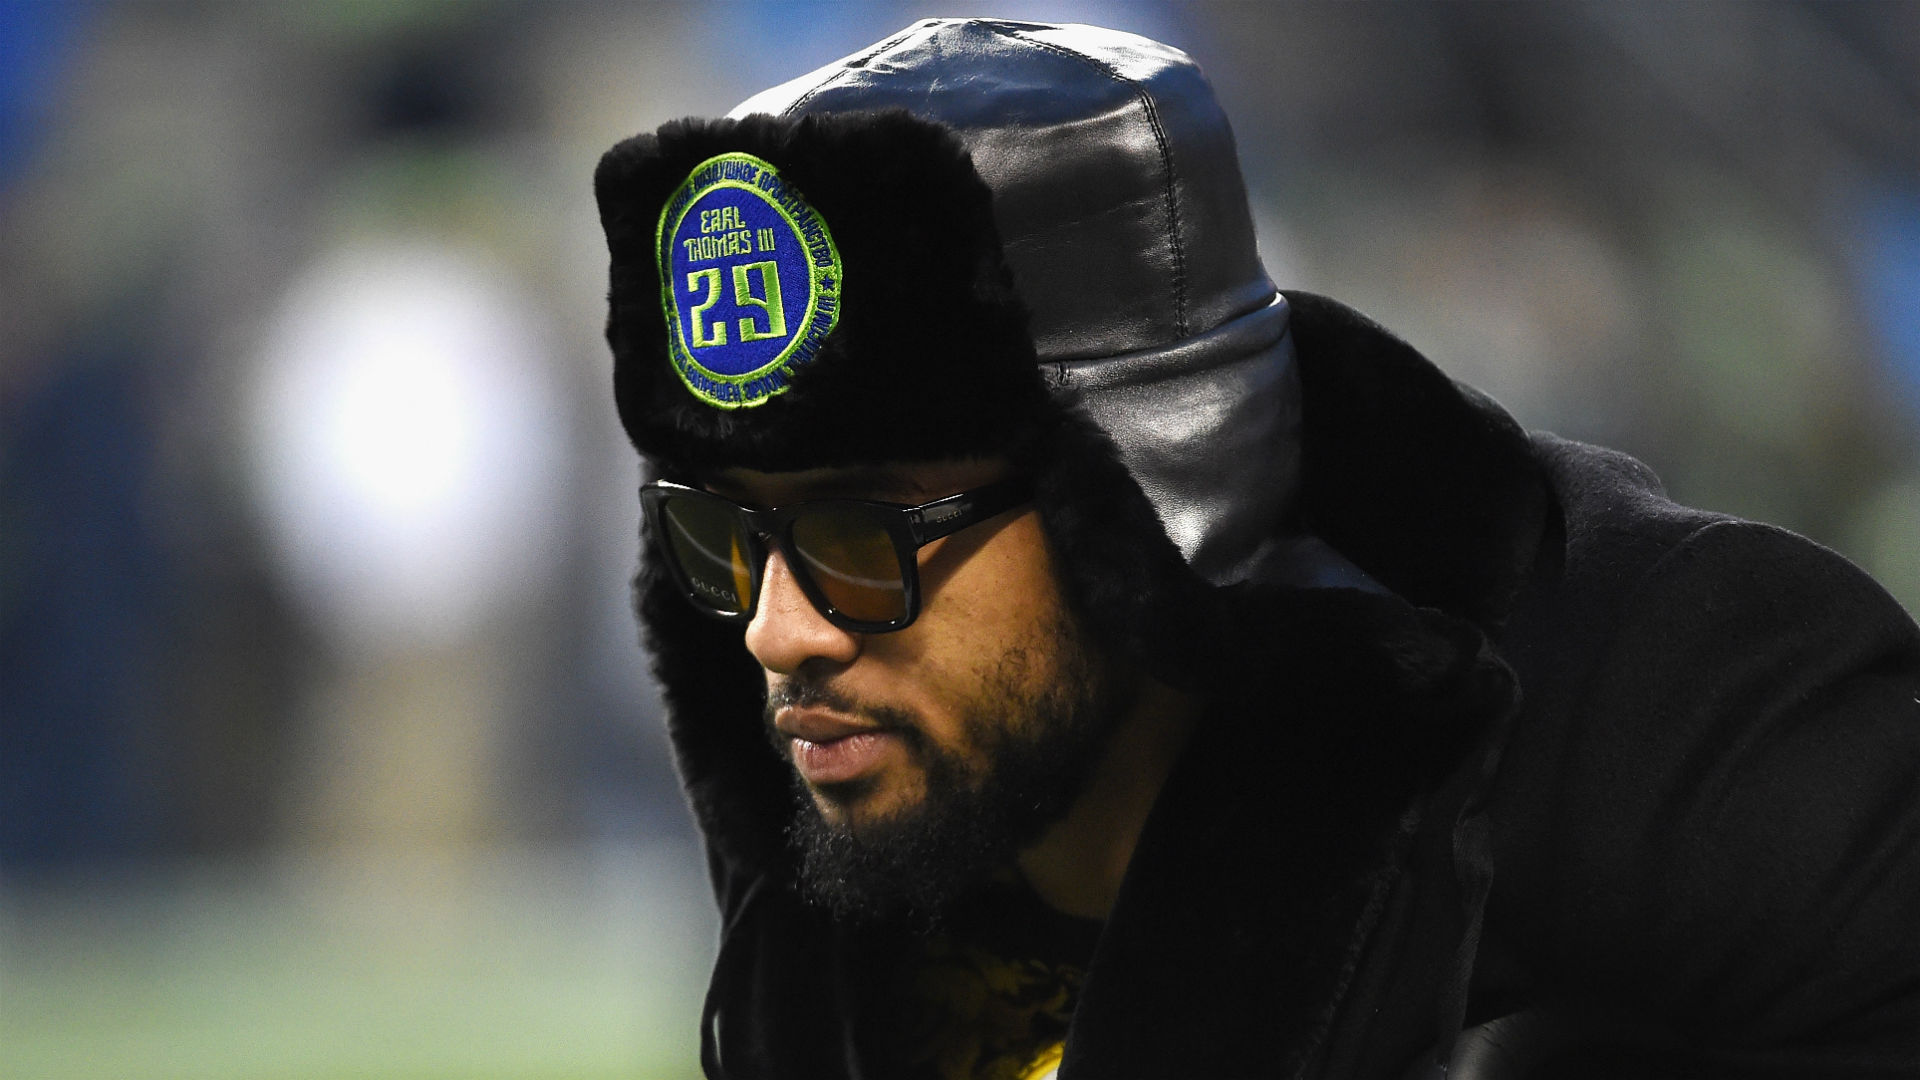 Earl Thomas Russian Seahawks hat has a cool story behind it